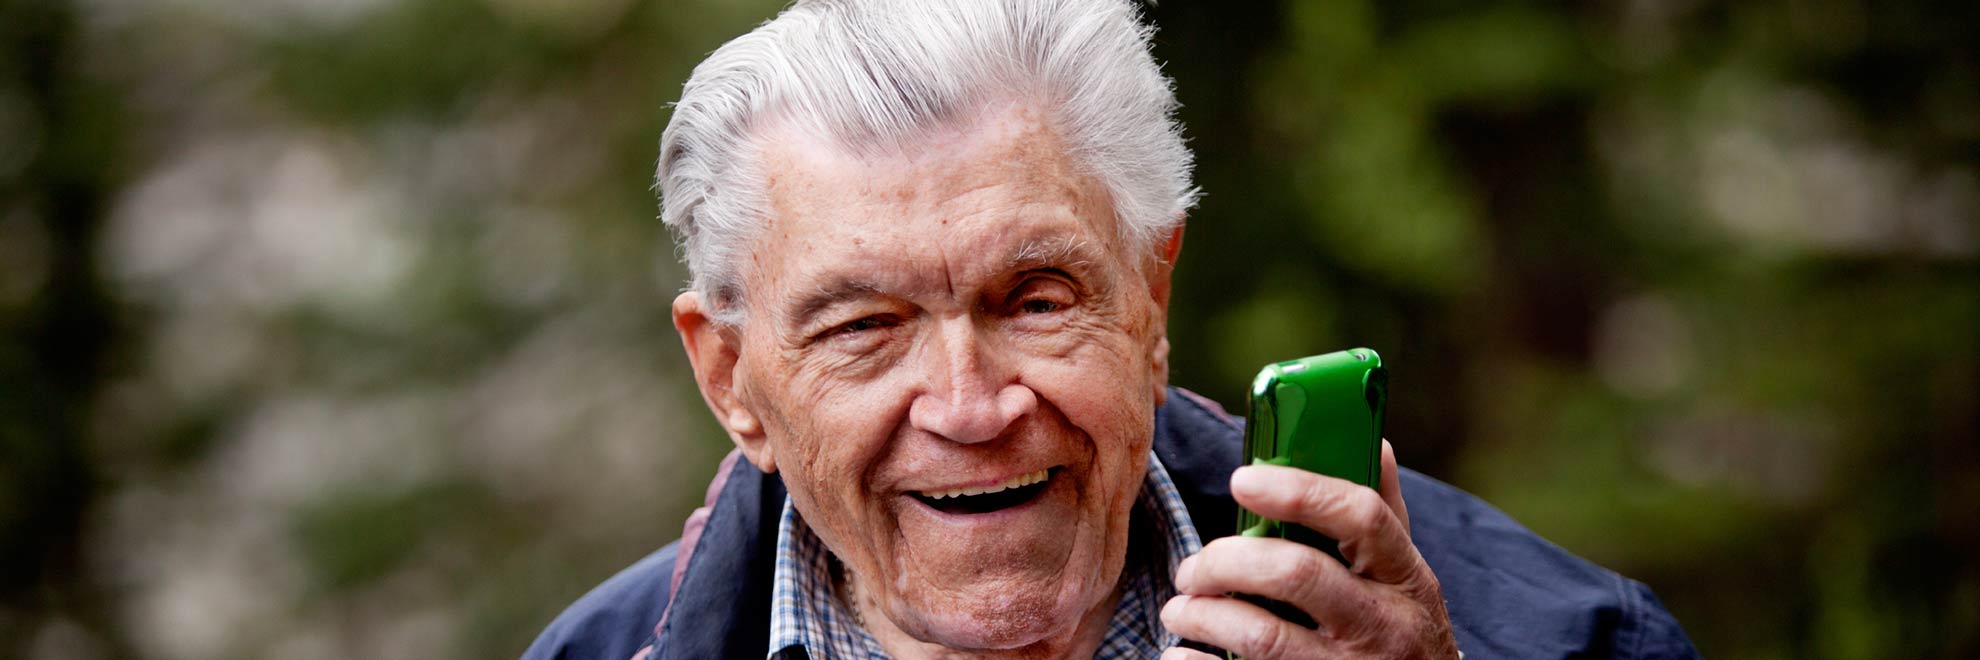 old man with mobile phone